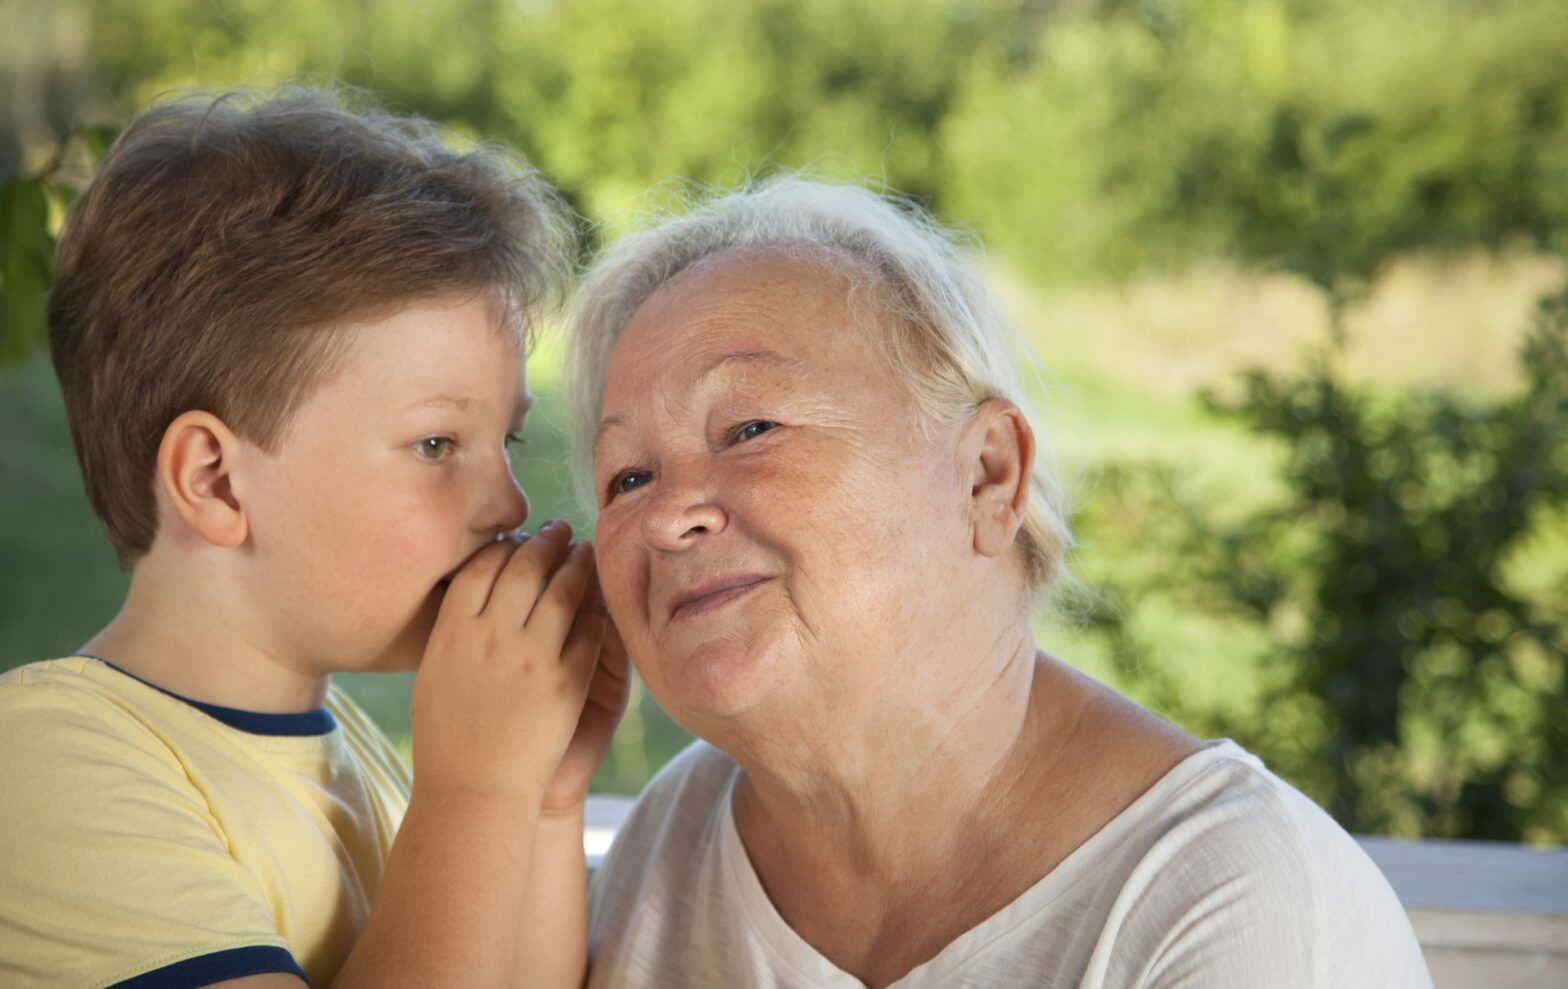 Information on hearing aids